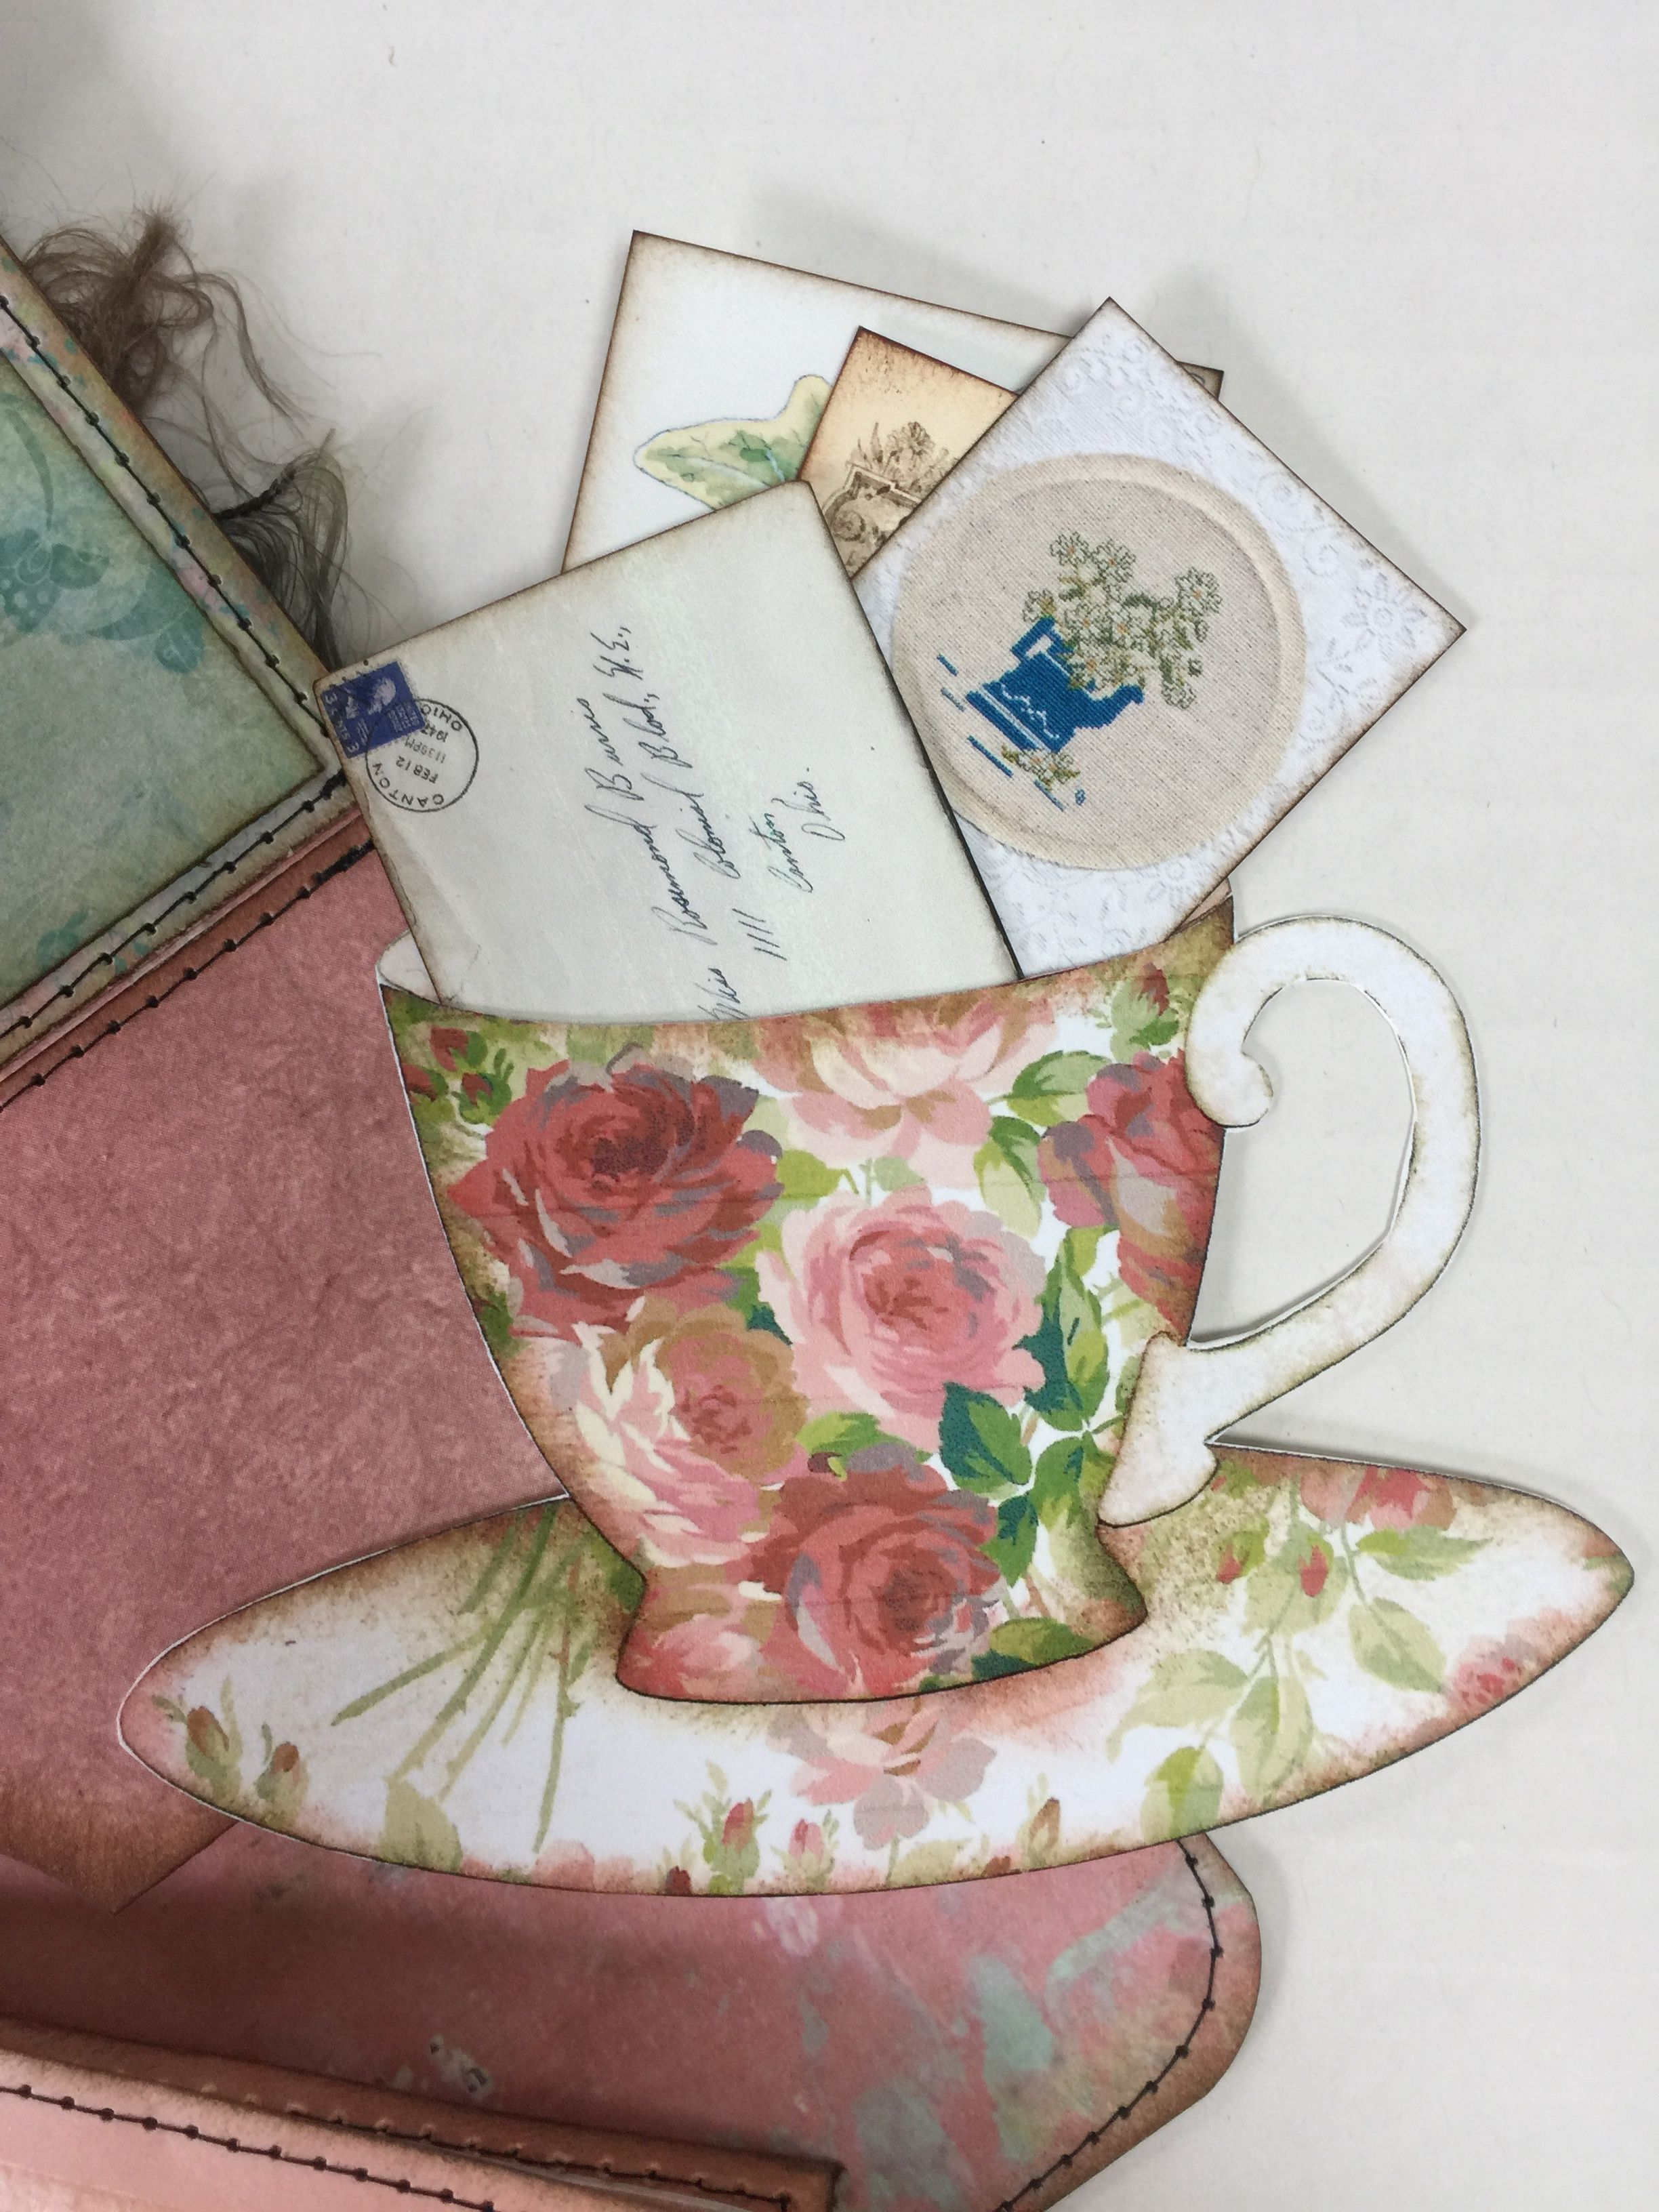 Pin by Suzanne Cogar on Junk journal embellishments, tags